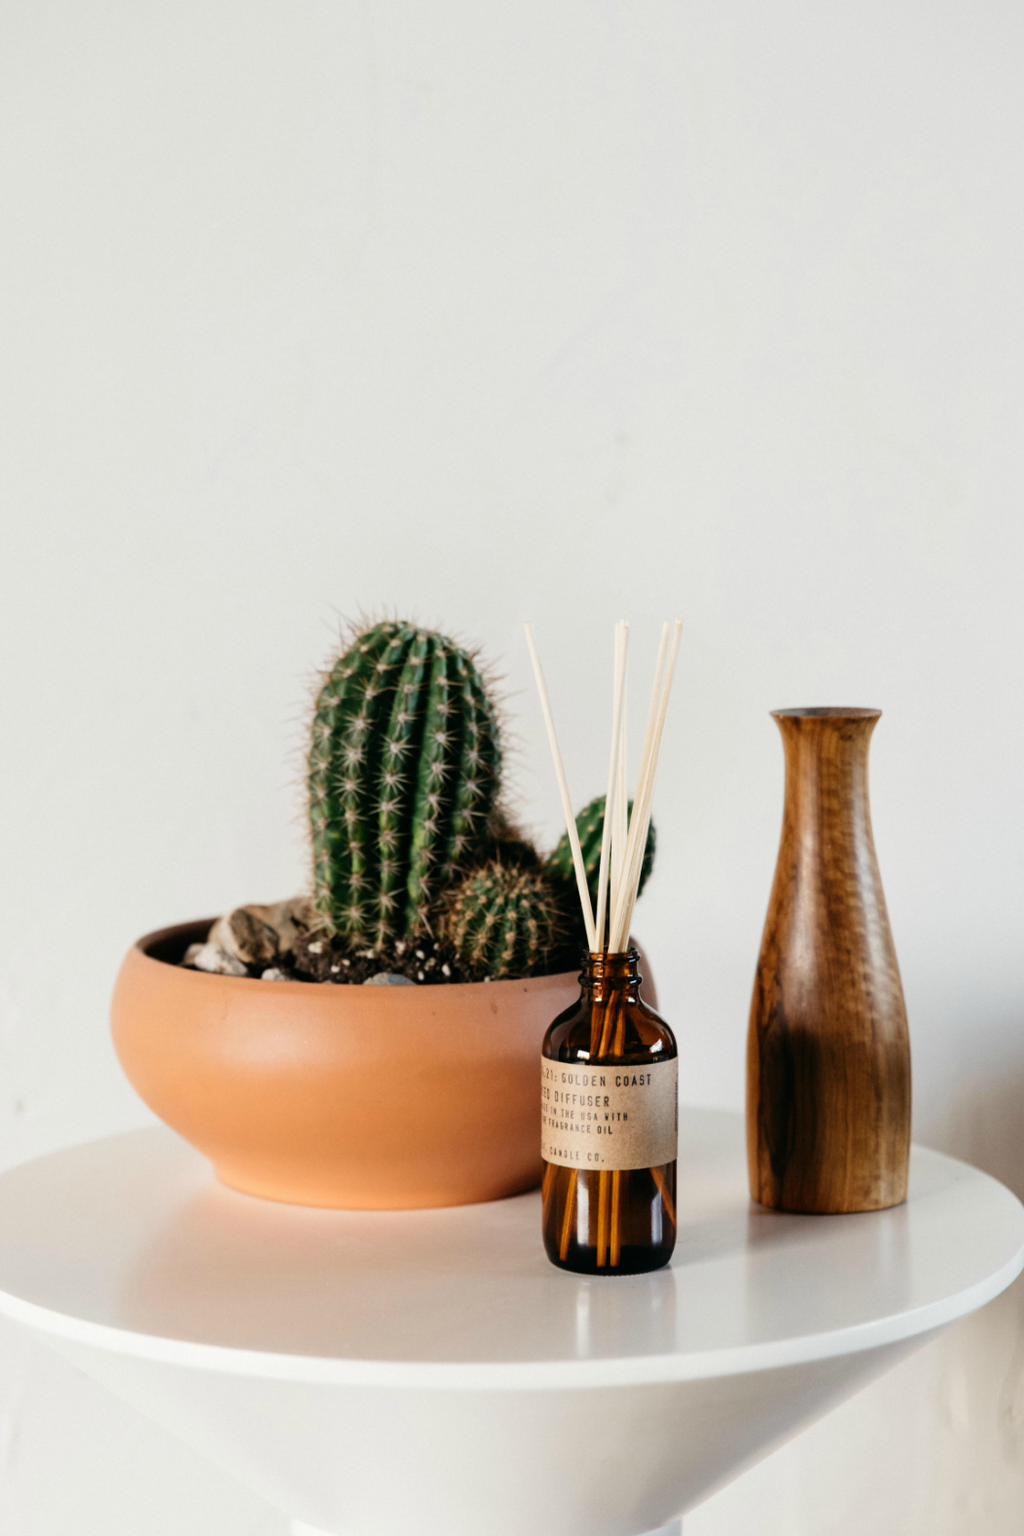 P.F. Candle Co. Golden Coast Diffuser